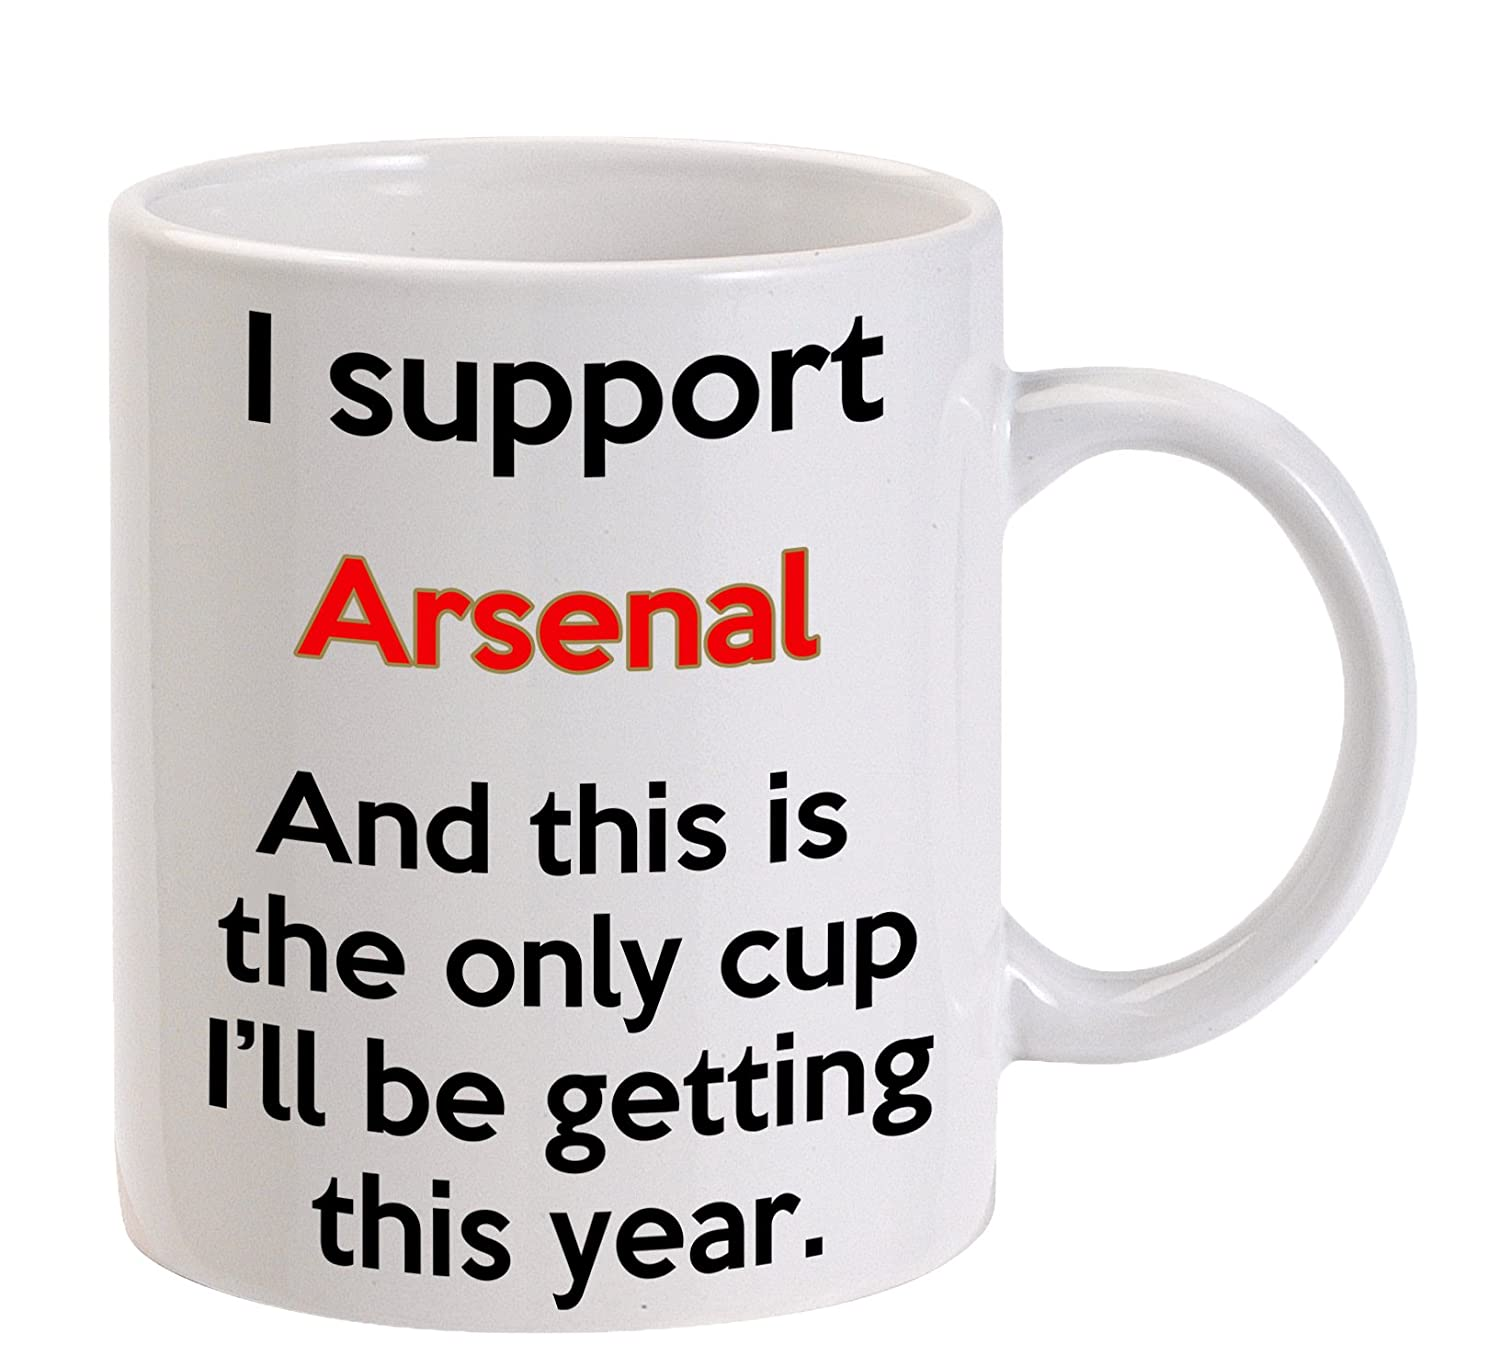 ARSENAL MUG - GREAT FUUNY GIFT FOR A SUPPORTER - 11 OZ SIZE - MACHINE WASHABLE Super Lemon